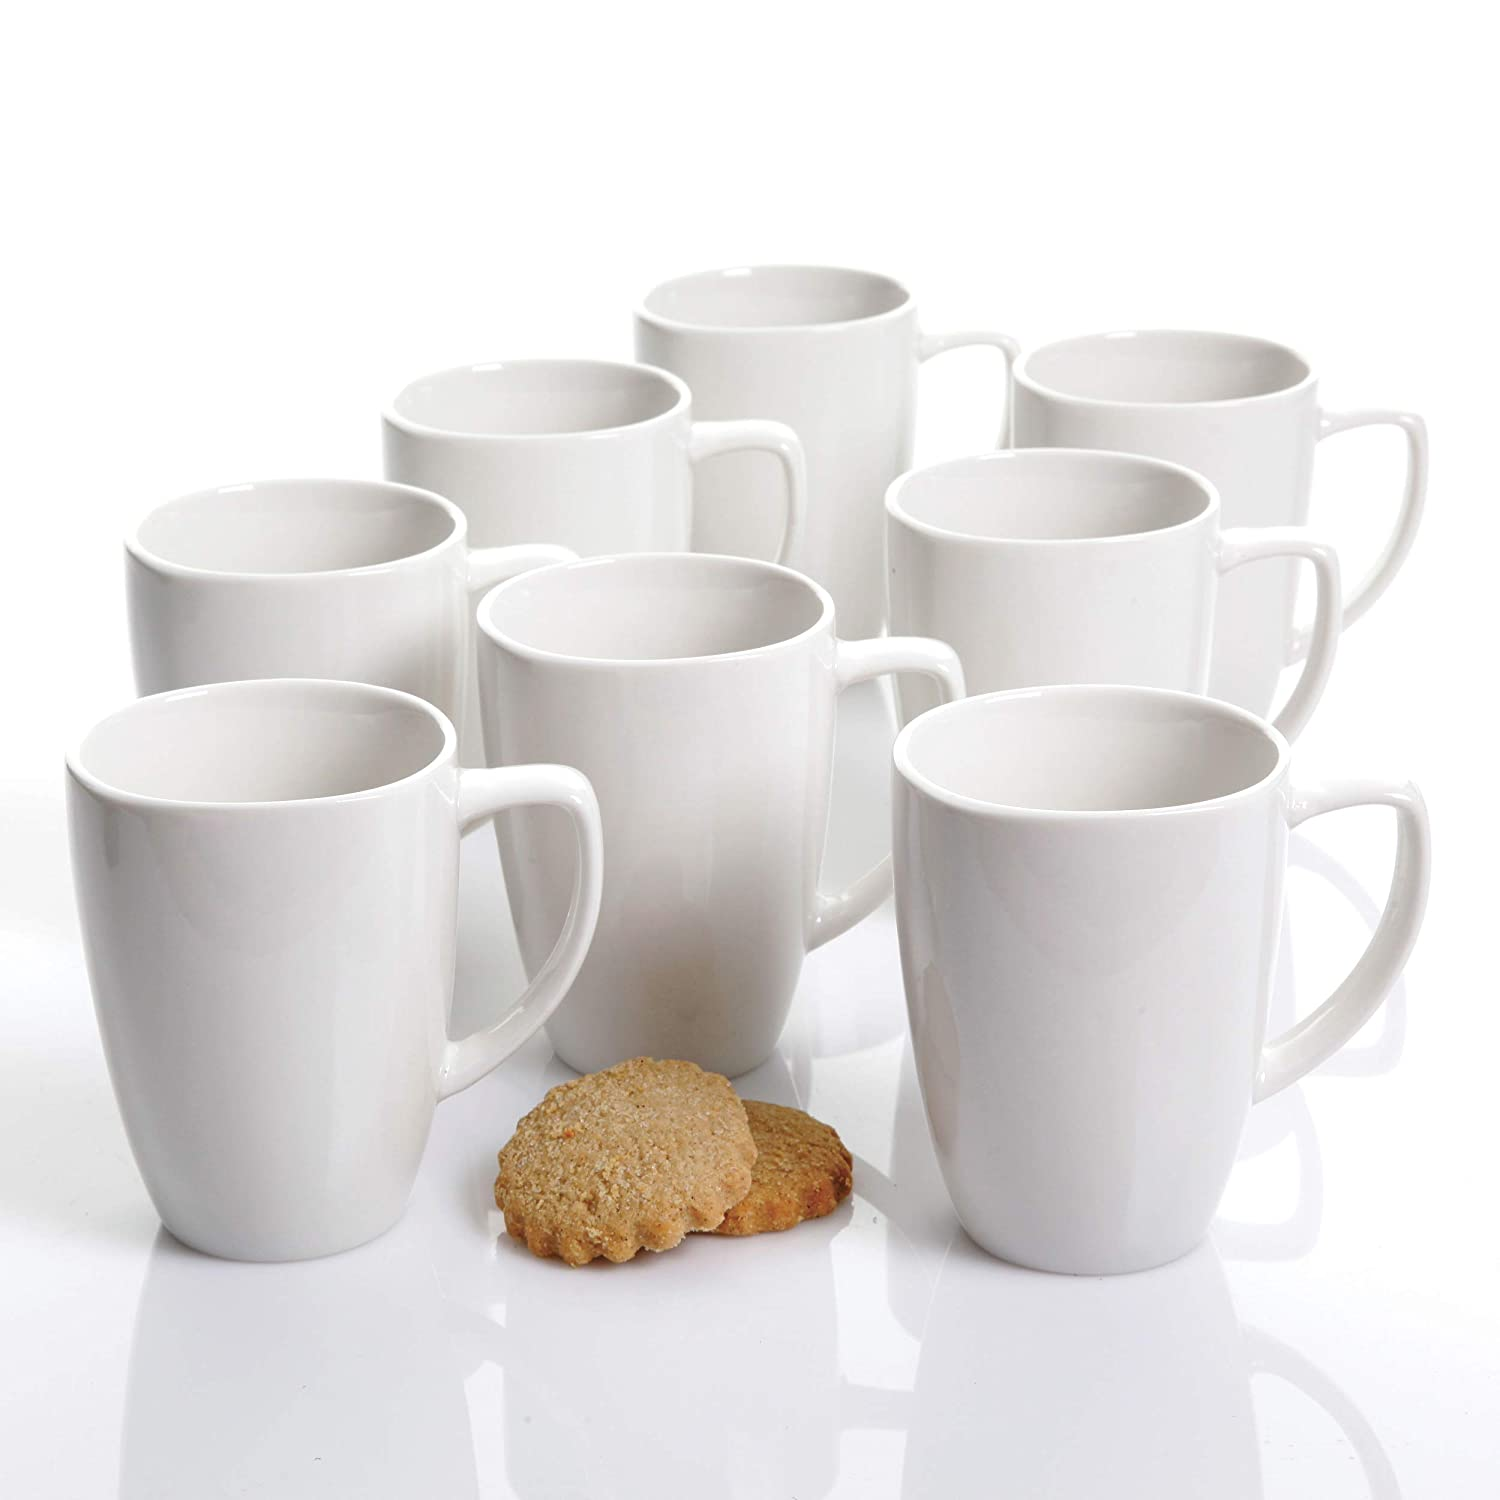 Coffee Cup Set by GIBSON Coffee Mug Set Stoneware Coffee Cups Fine Ceramic Whiteware 8 pc set, NEW ITEM